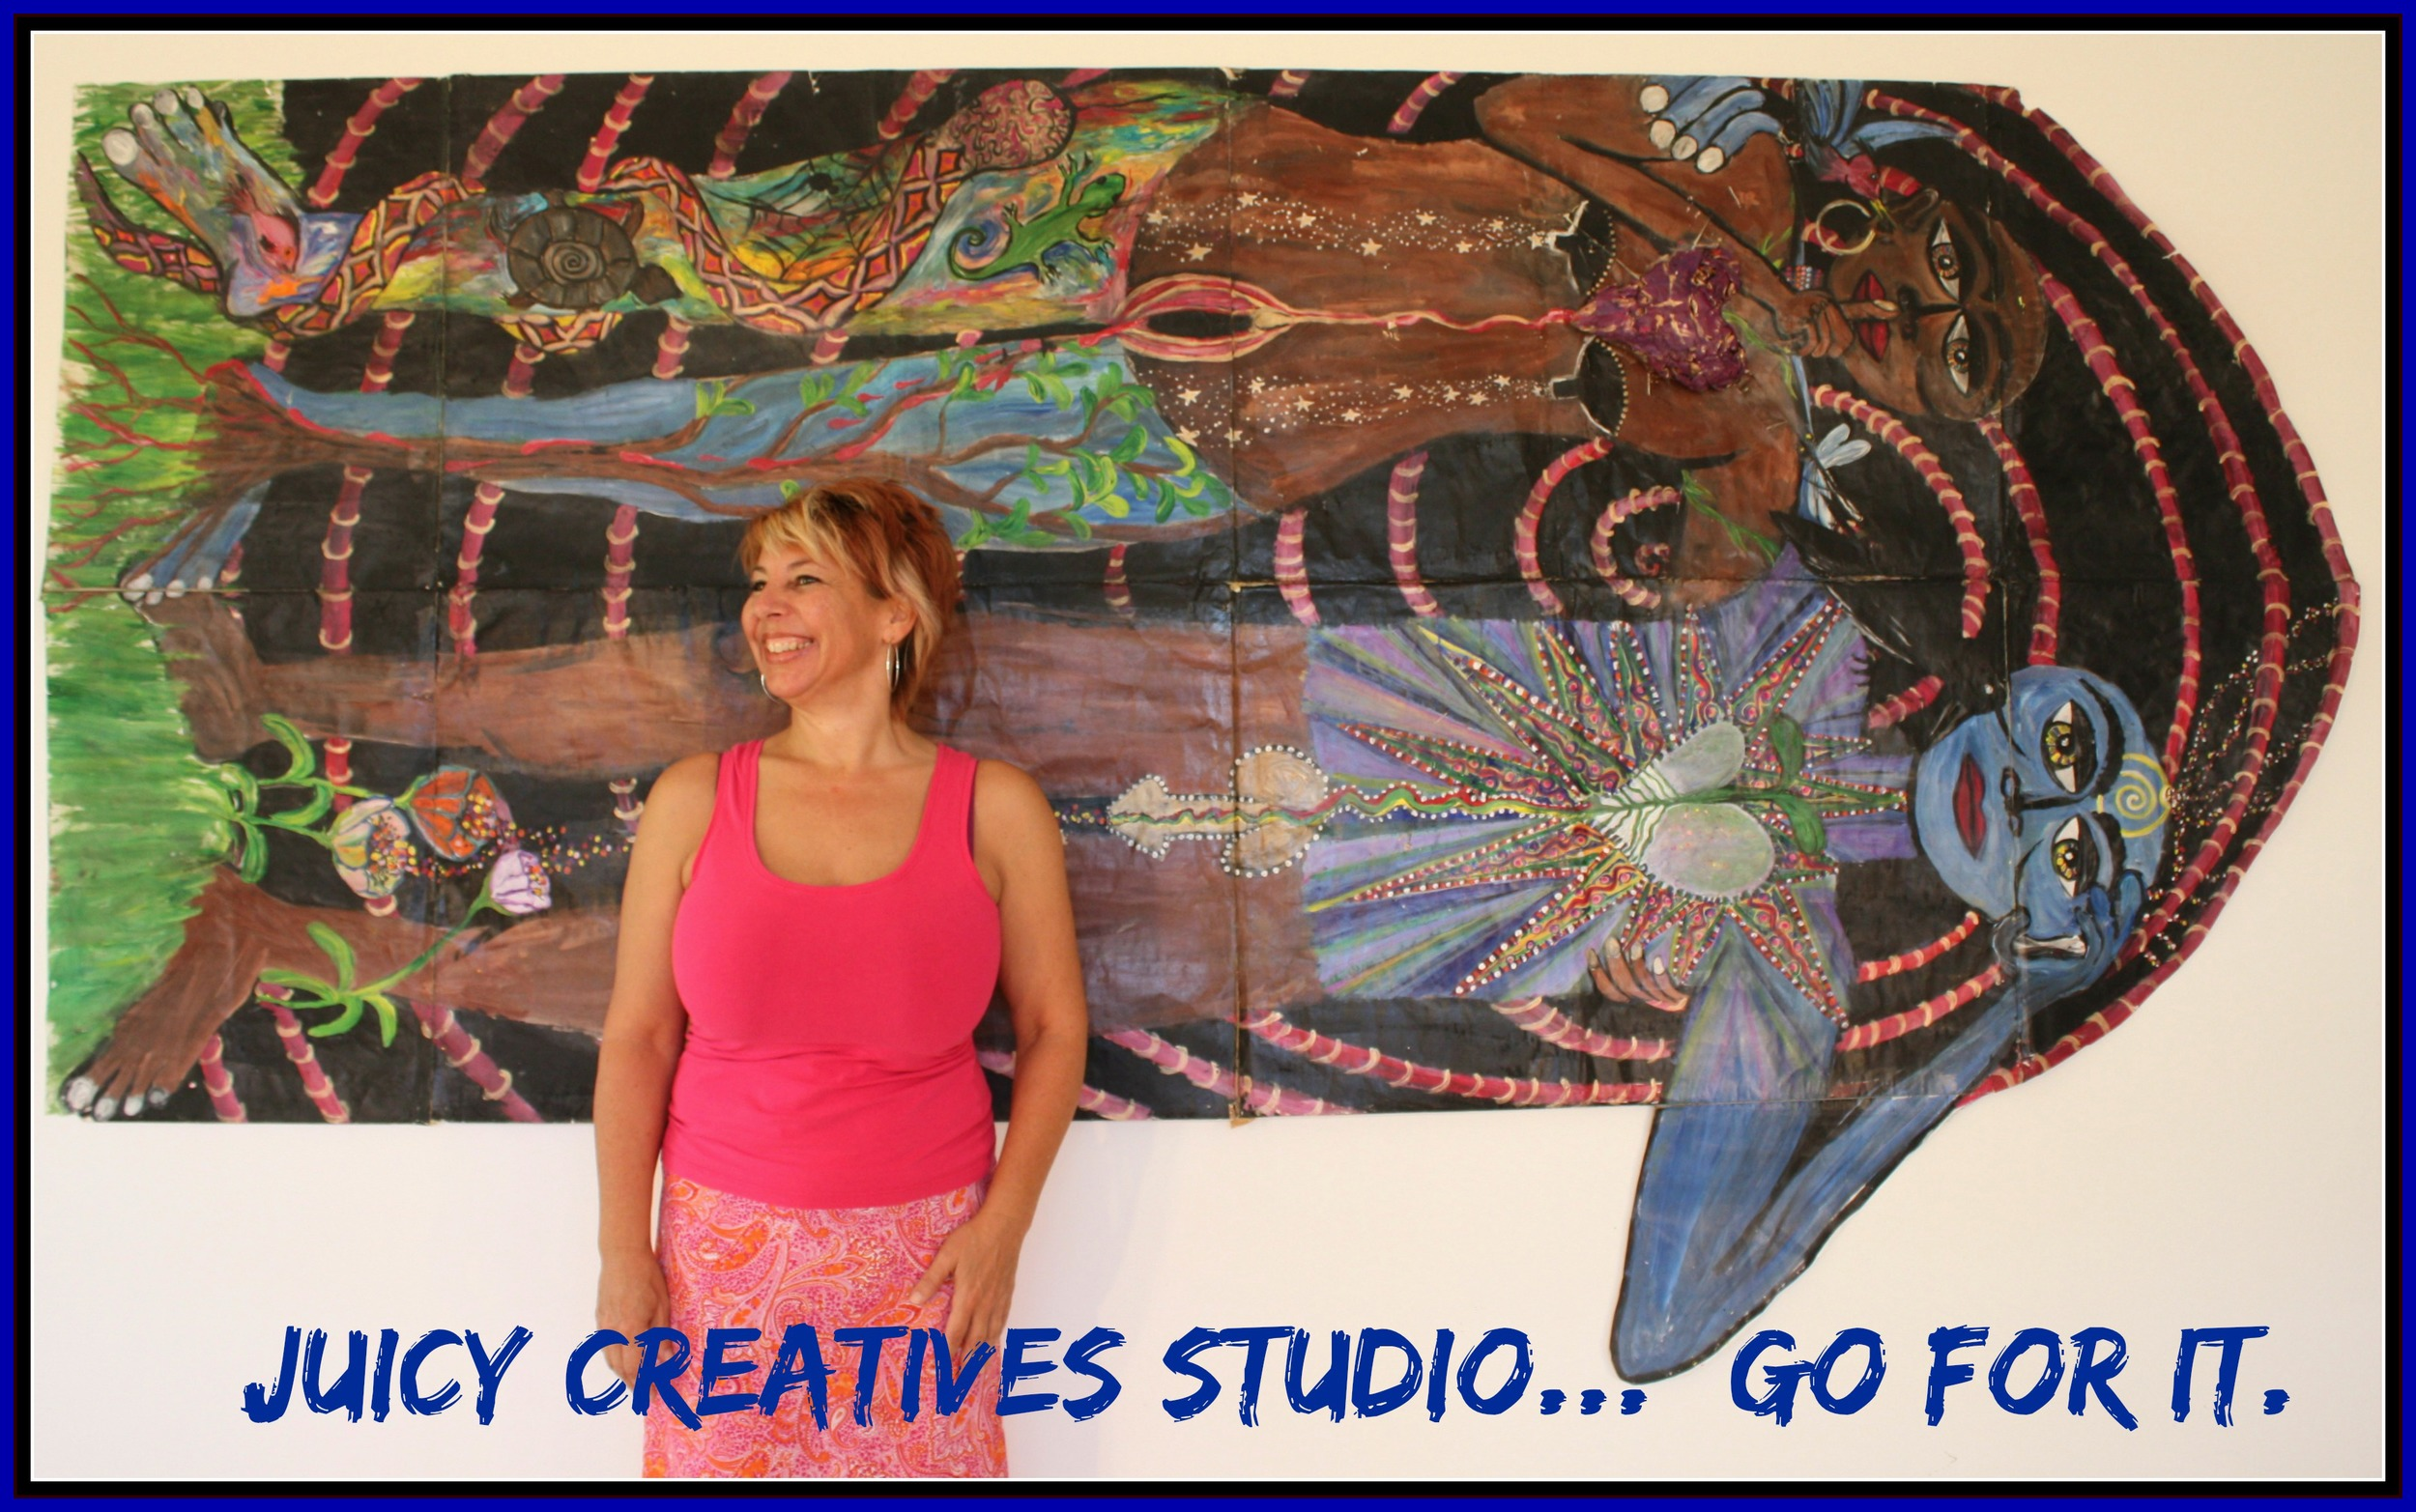 Elise Crohn owner of Juicy Creatives Studio--definitely GOING FOR IT!